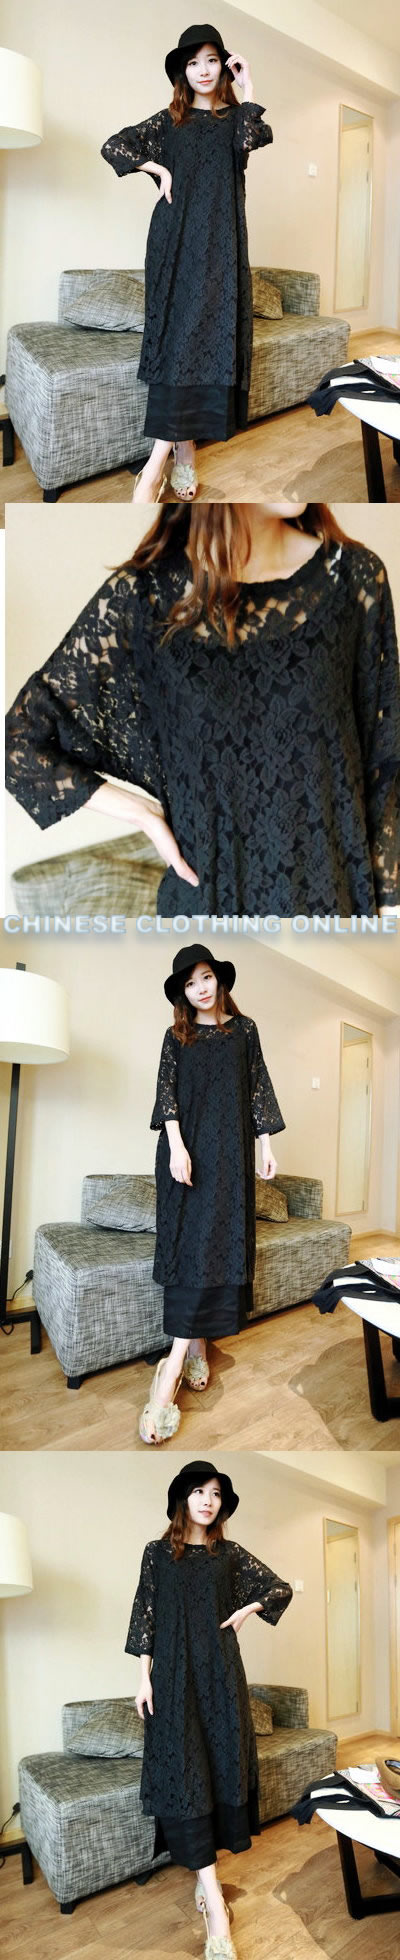 Ethnic Long-sleeve Embroidery Gauze Dual-layer Dress (CM)